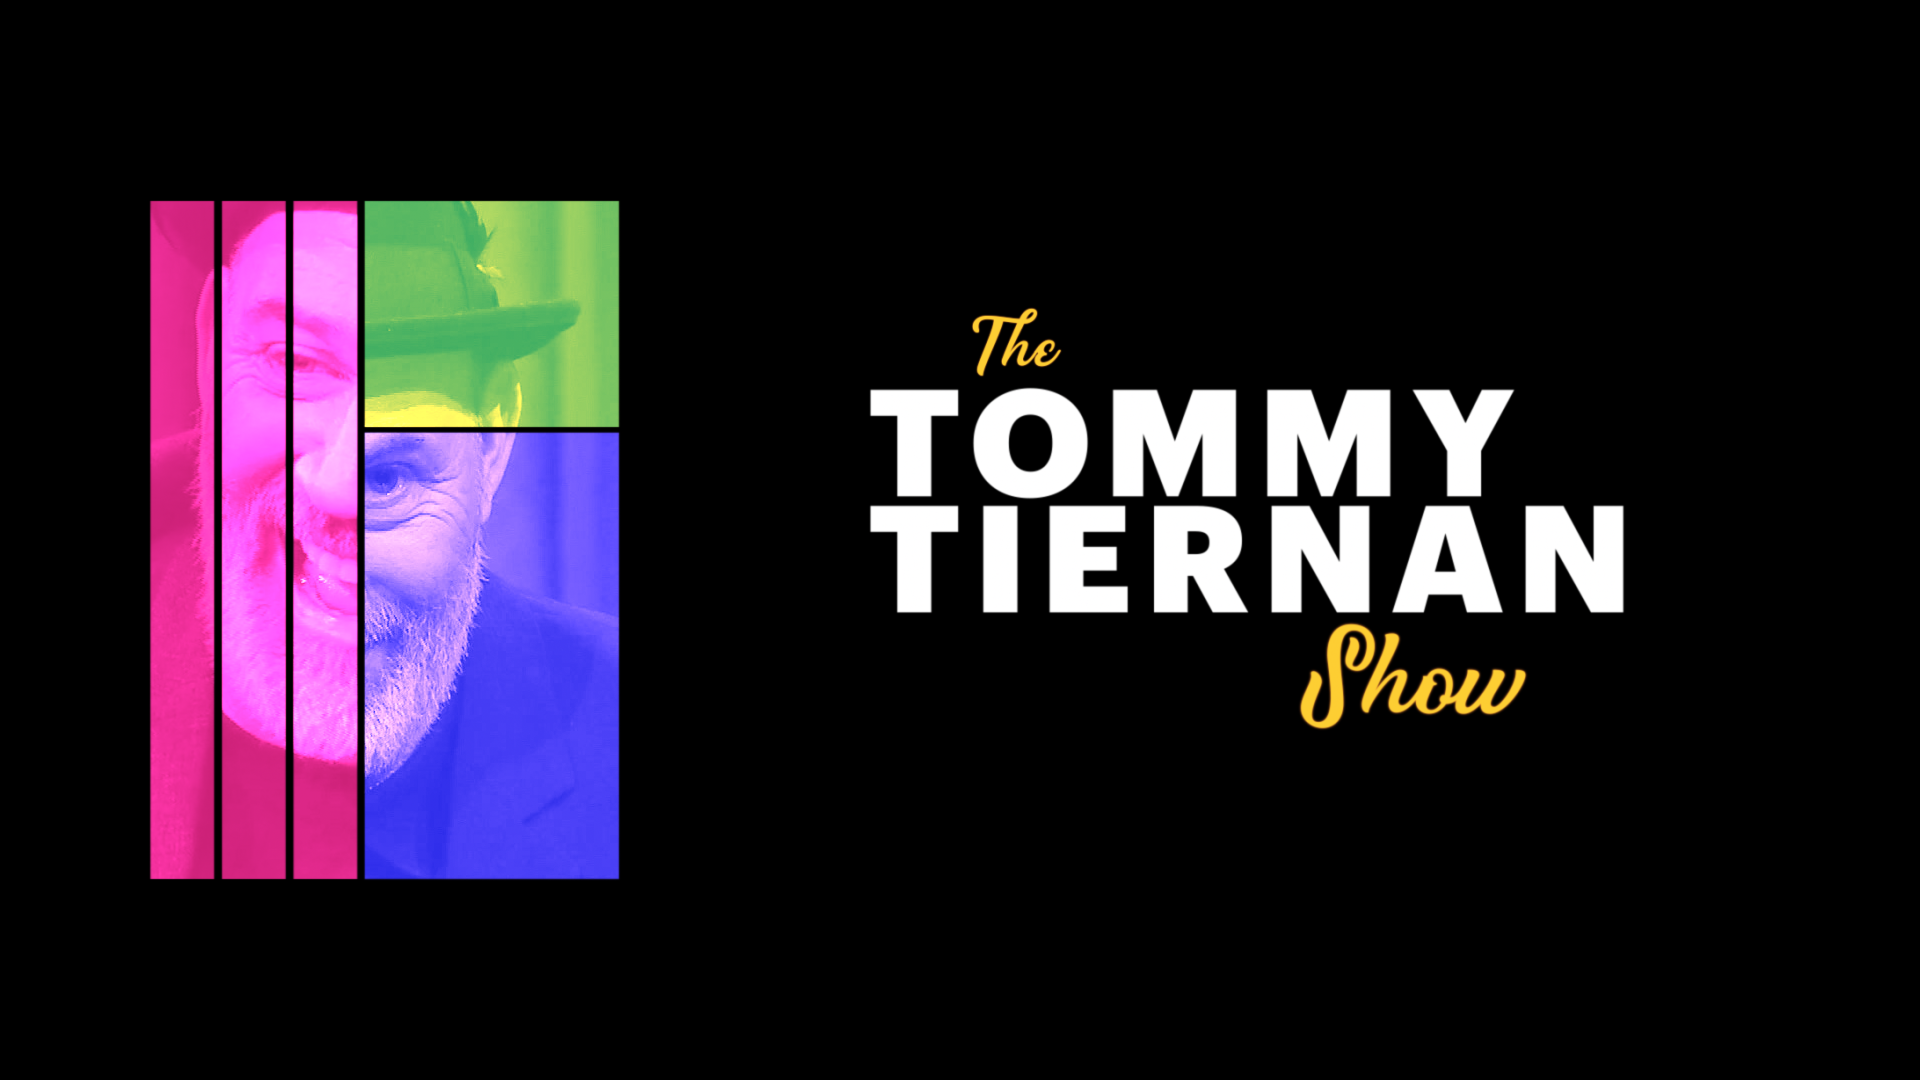 Cover image: The Tommy Tiernan Show